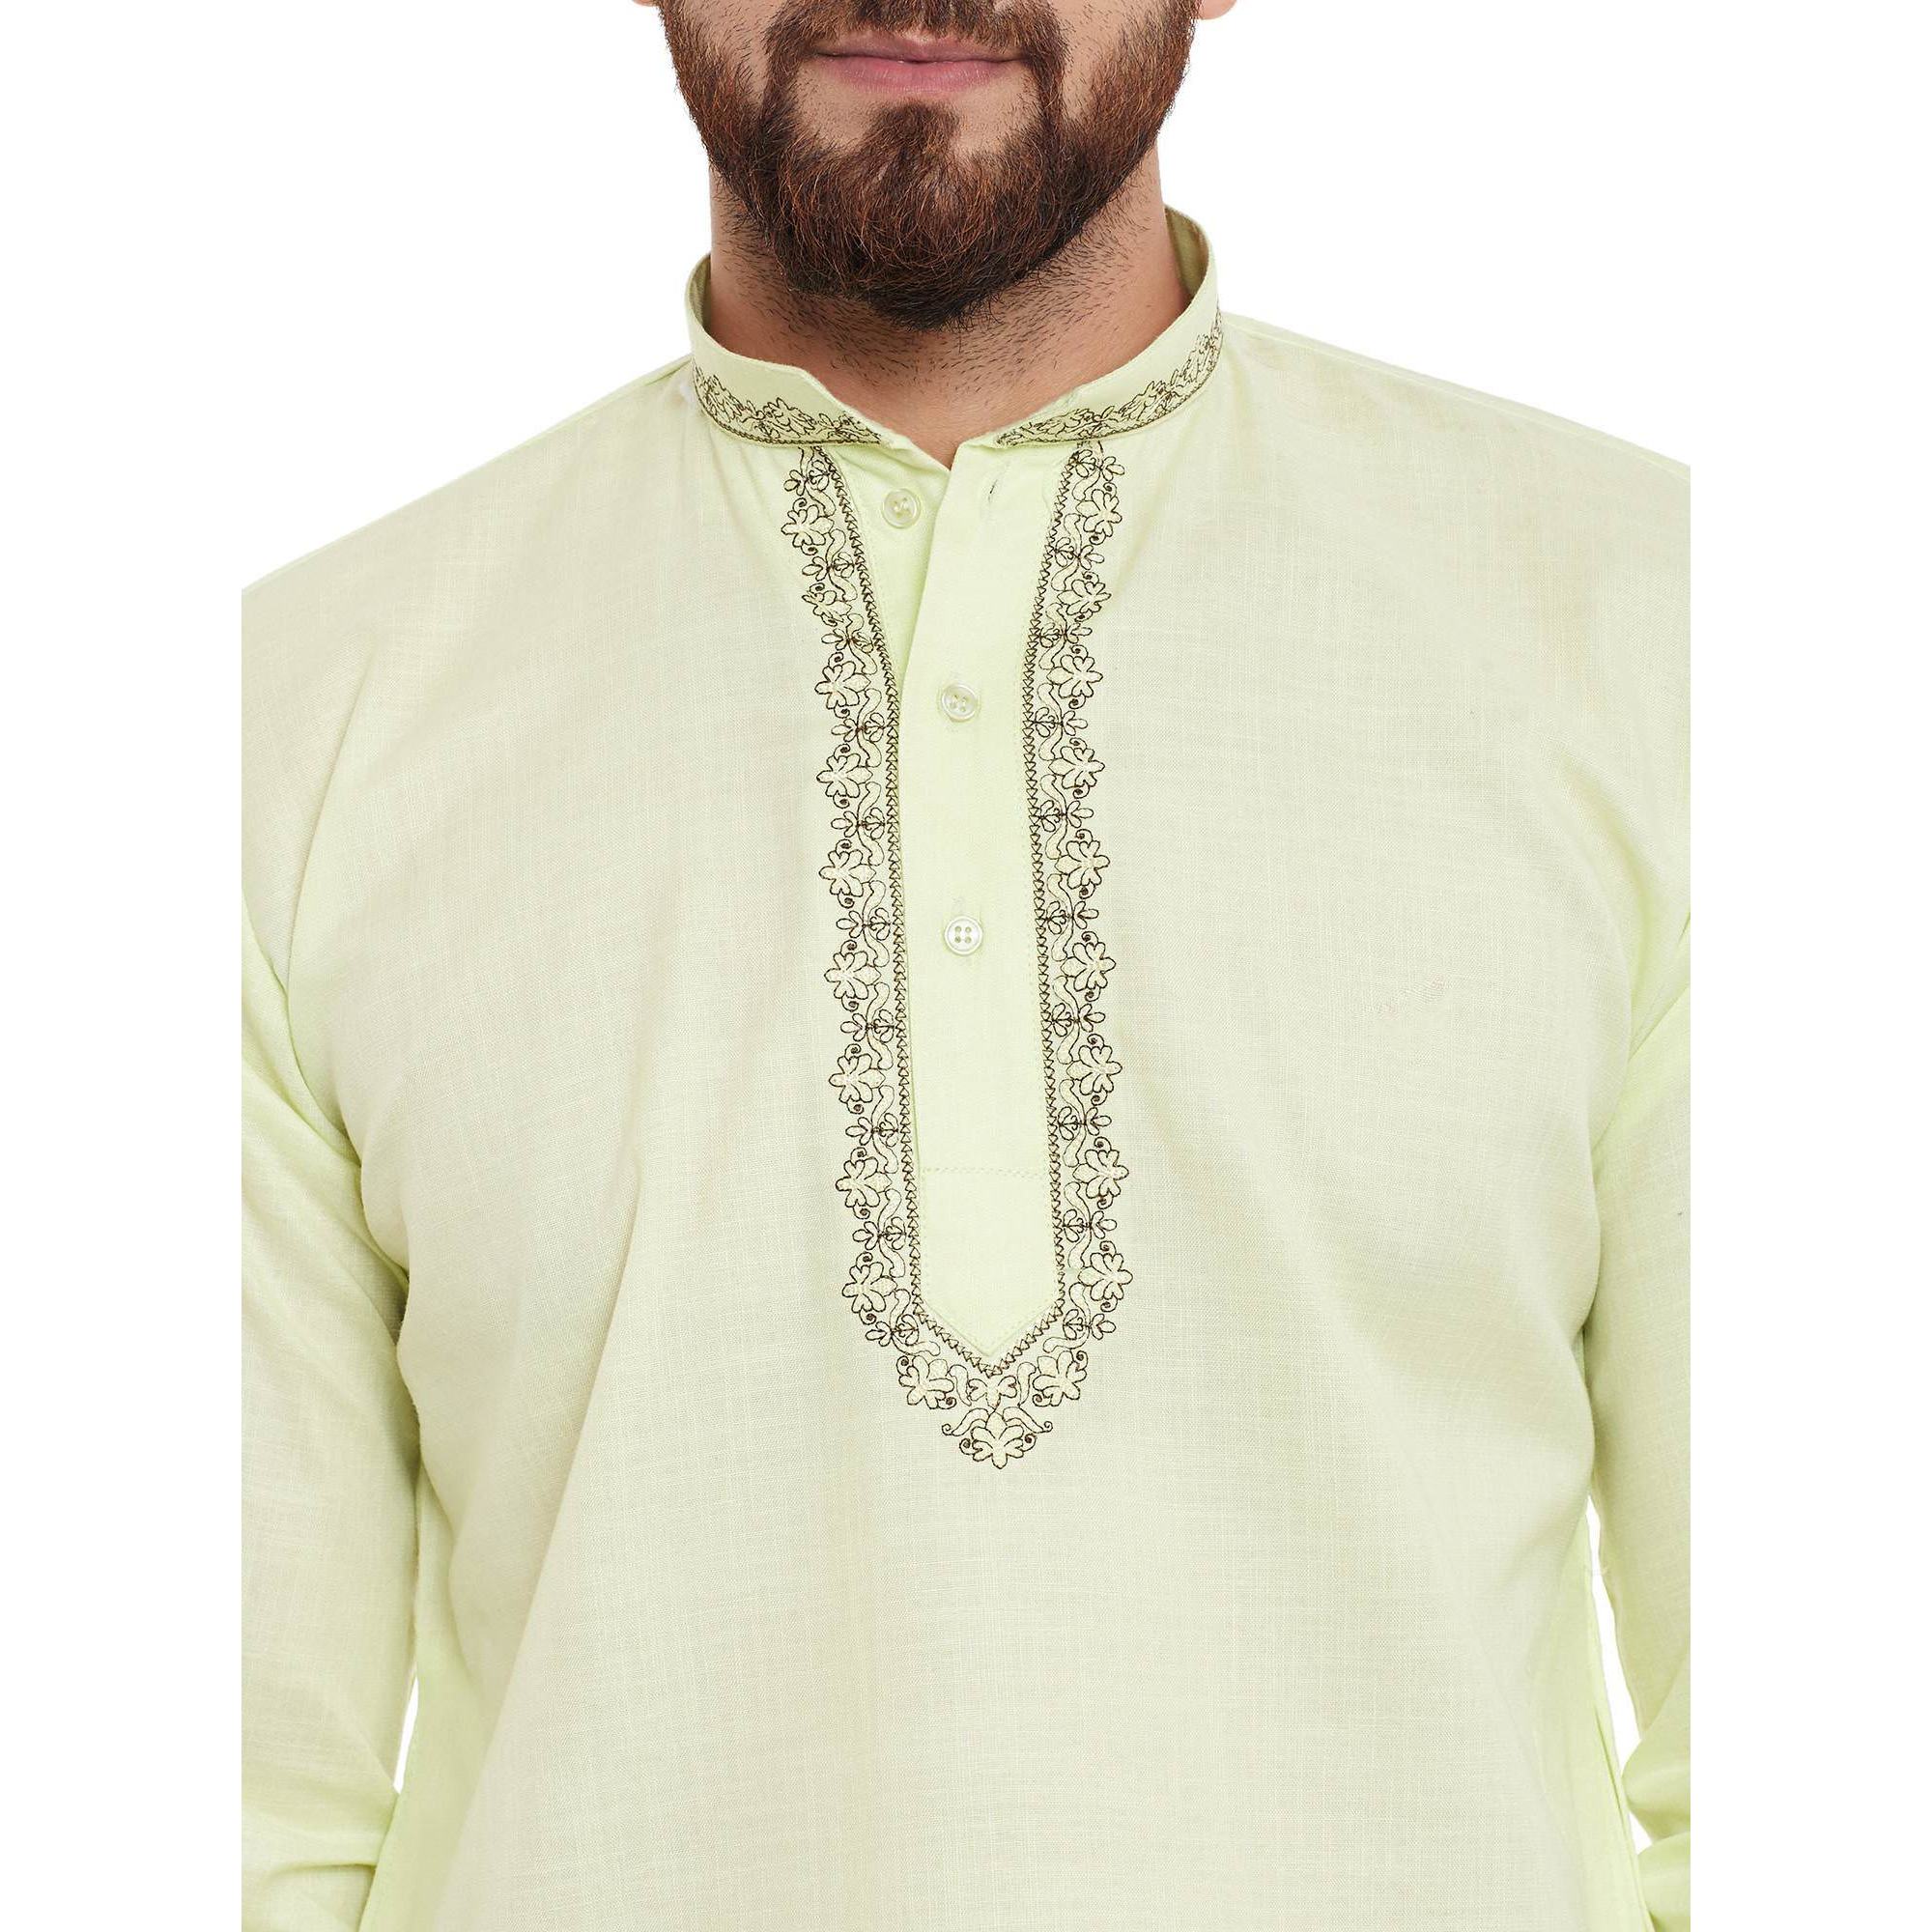 Men's Traditional Ethnic Wear Lime Green Cotton Short Kurta Full Sleeve Regular Fit